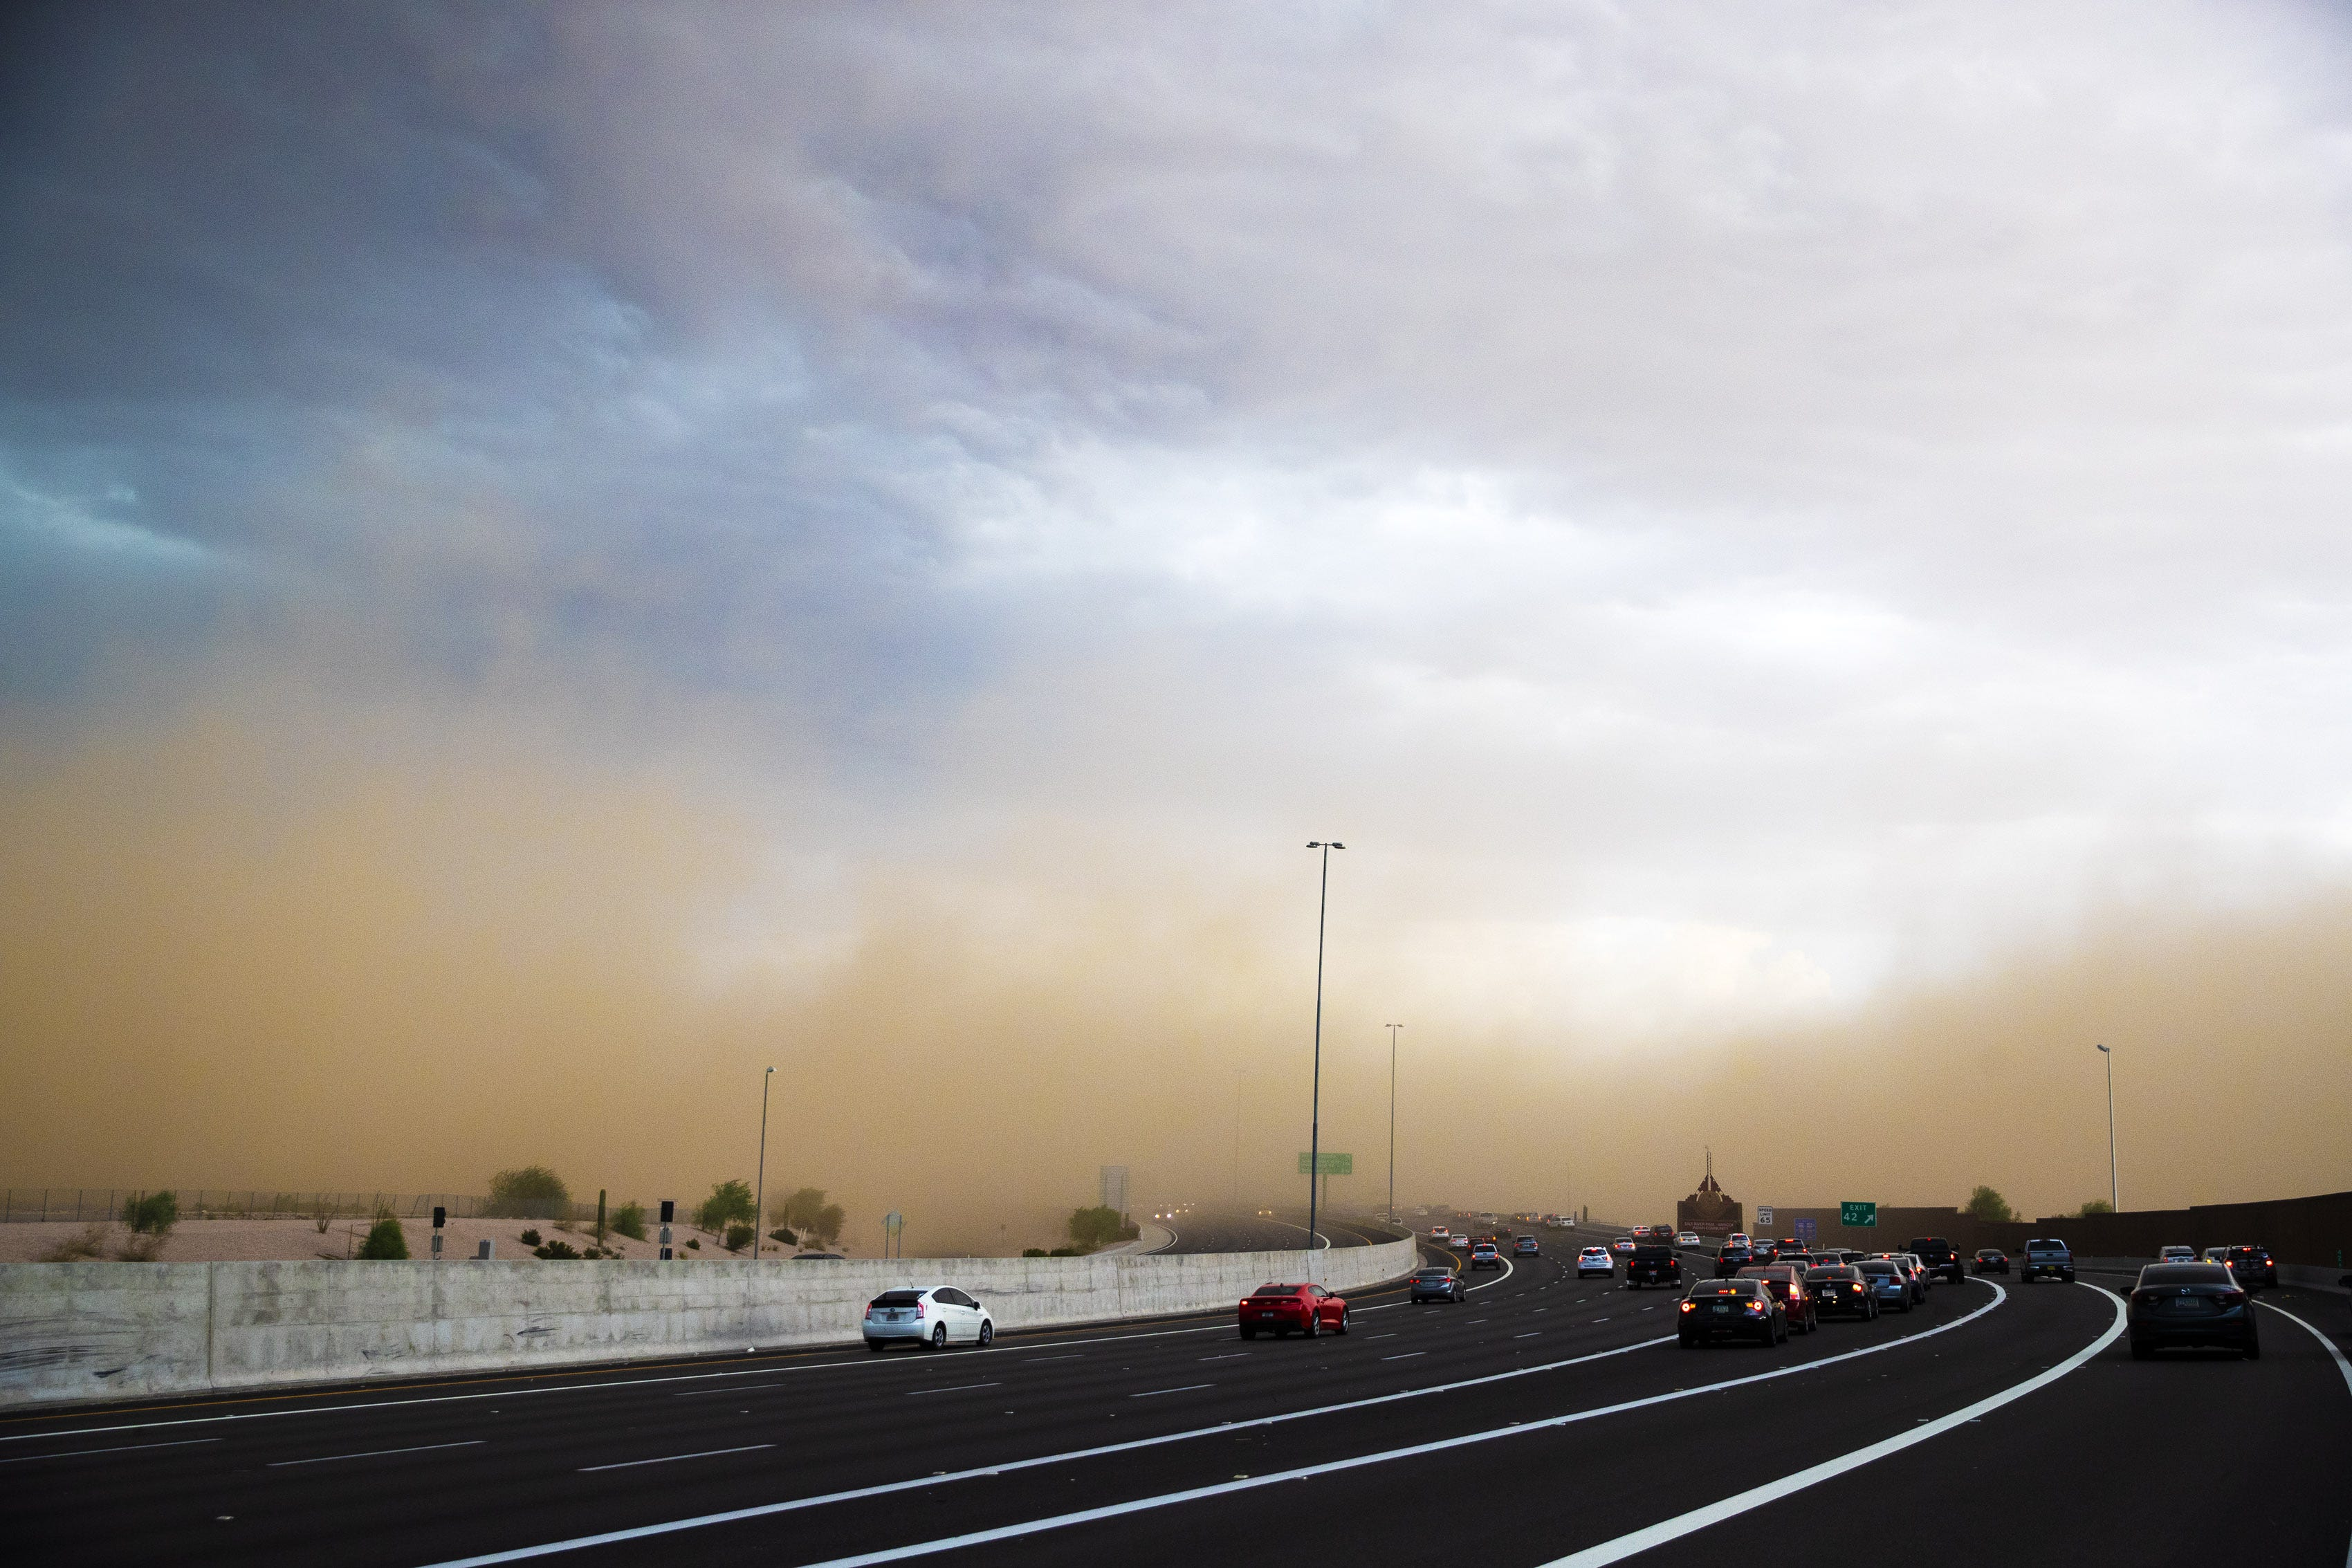 Latest monsoon storm brought high winds, heavy rainfall to the Valley | Arizona Central